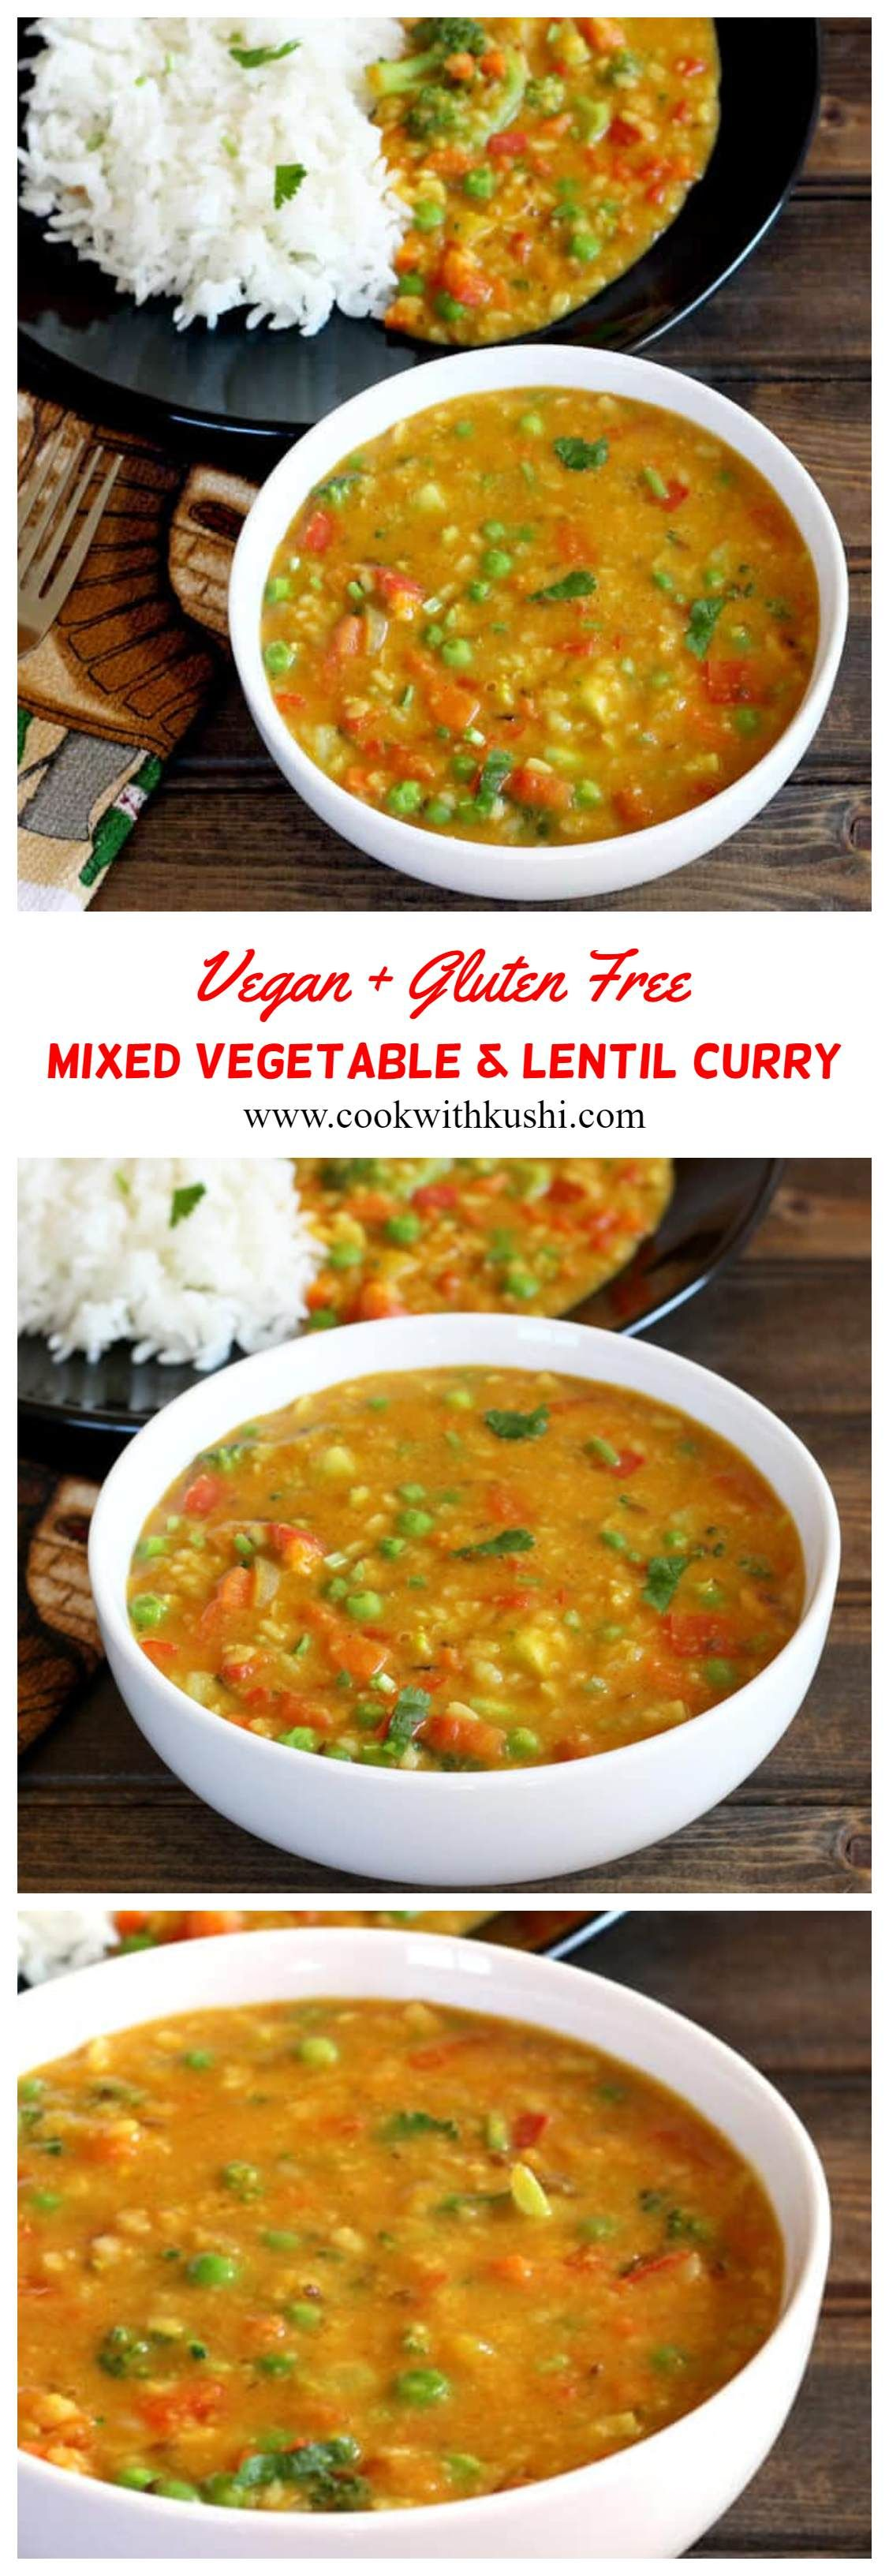 Mixed Vegetable Dal or Vegetable Curry or Lentil Curry is a healthy, nutritious, protein packed vegetarian or vegan recipe that is an great alternative to traditional dal. This dish can be prepared in less than 25 minutes and served with any breads like NAAN, ROTI, CHAPATI or rice items such as steamed rice, JEERA RICE or GHEE RICE for lunch or dinner.